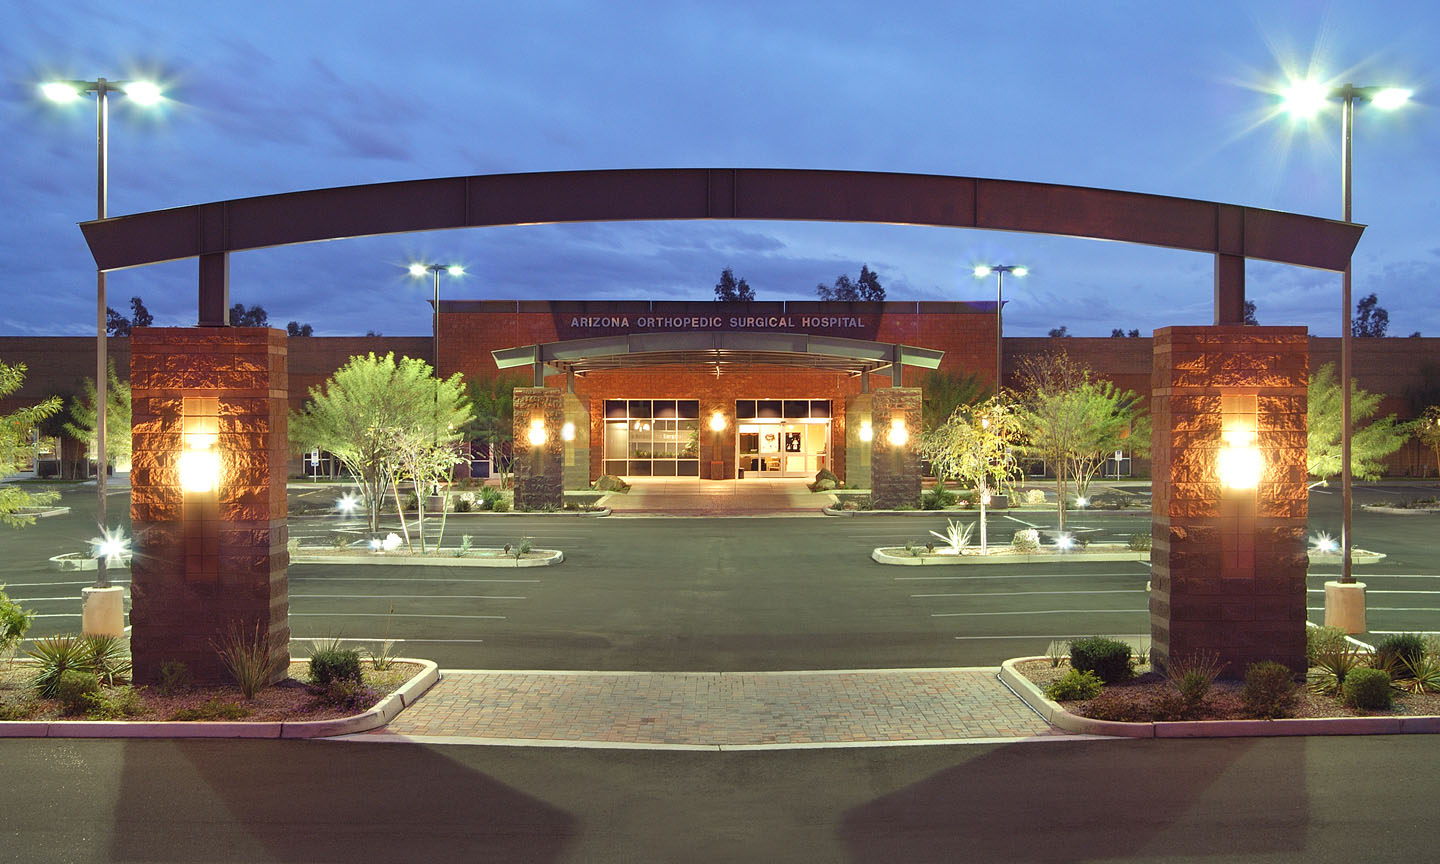 Arizona Orthopedic Hospital and Offices